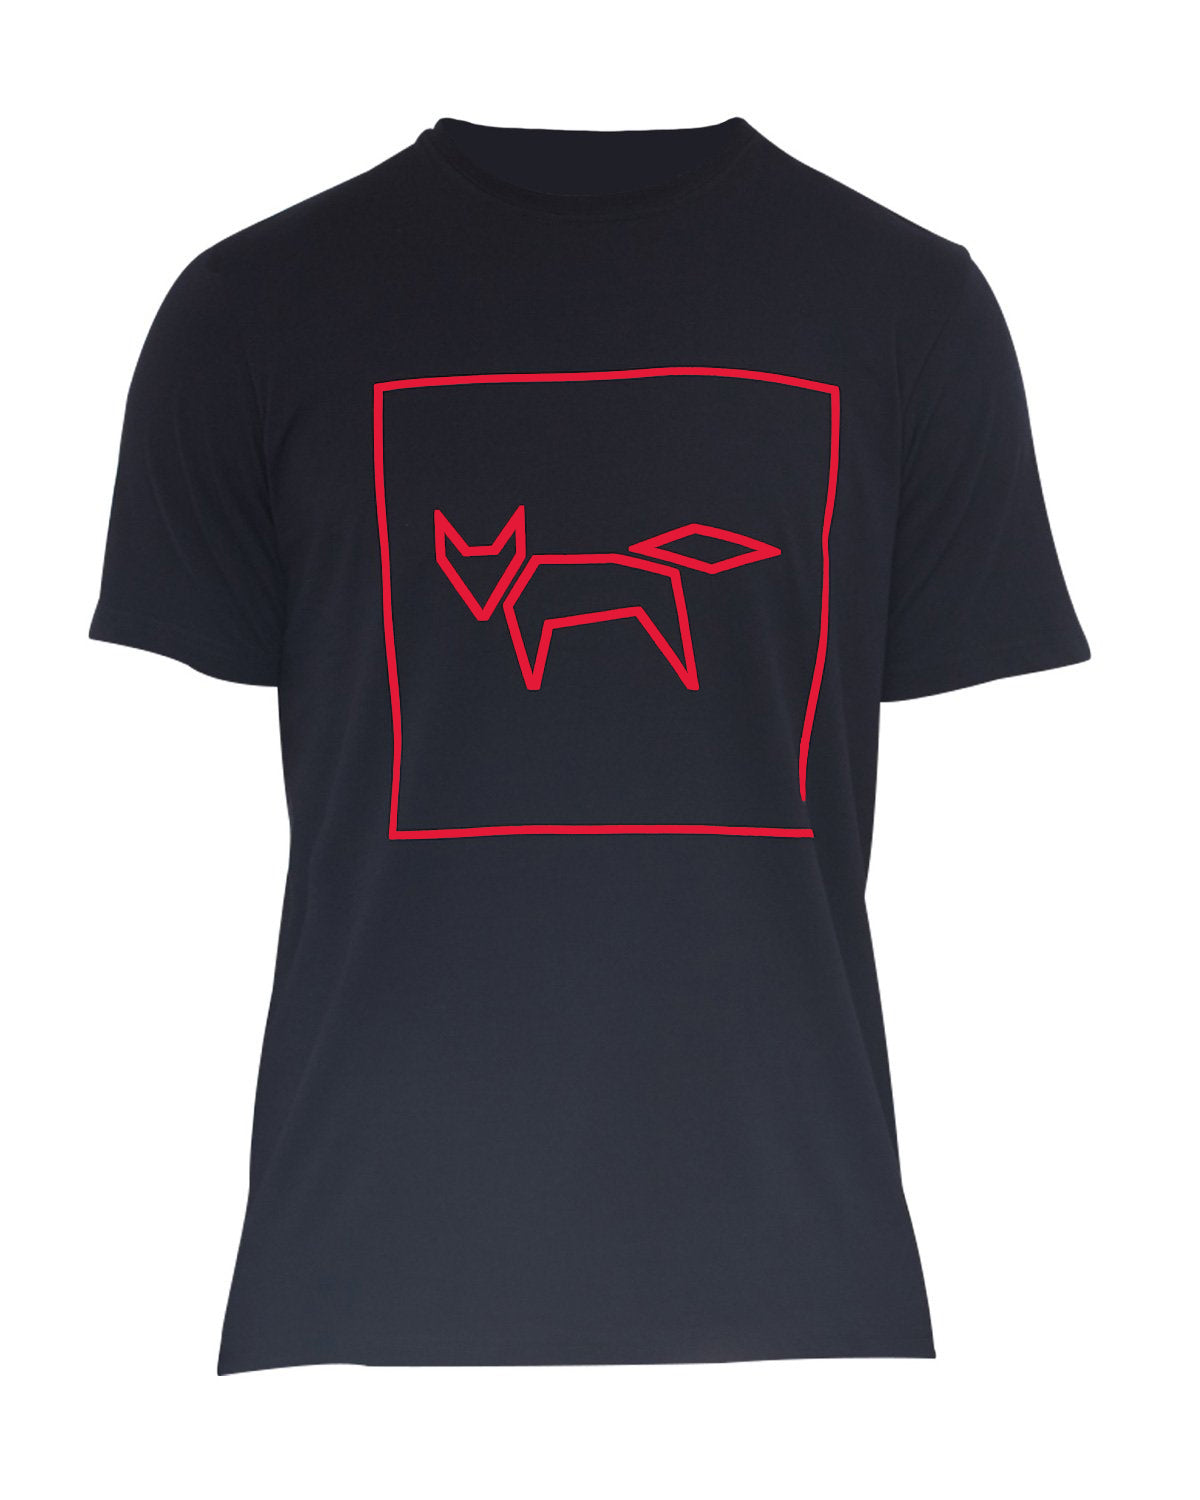 FOX LOGO T-SHIRT IN BLACK